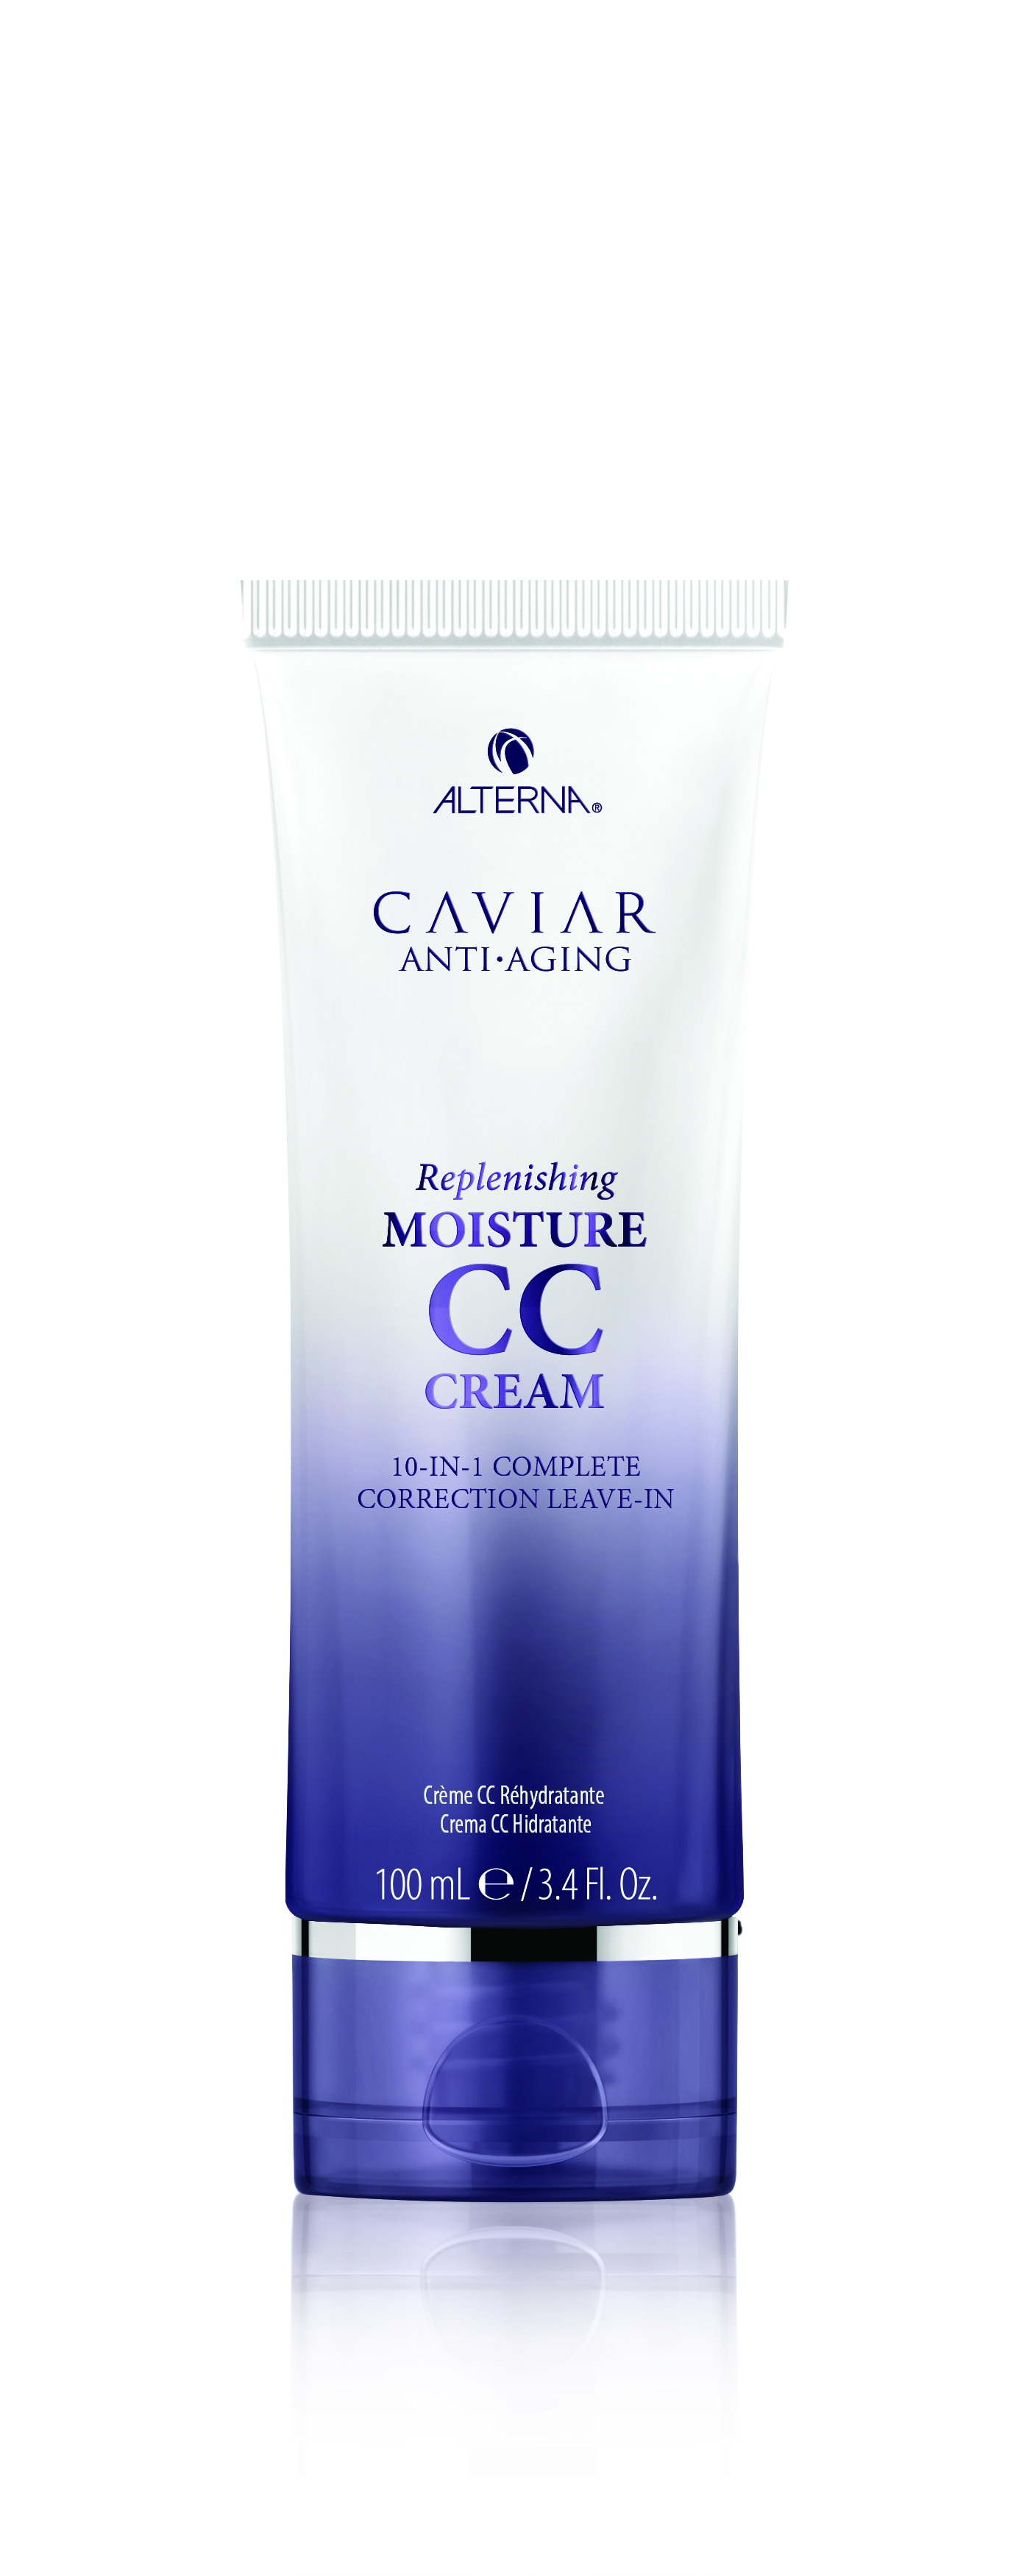 CAVIAR ANTI-AGING REPLENISHING MOISTURE CC CREAM (CREMA)